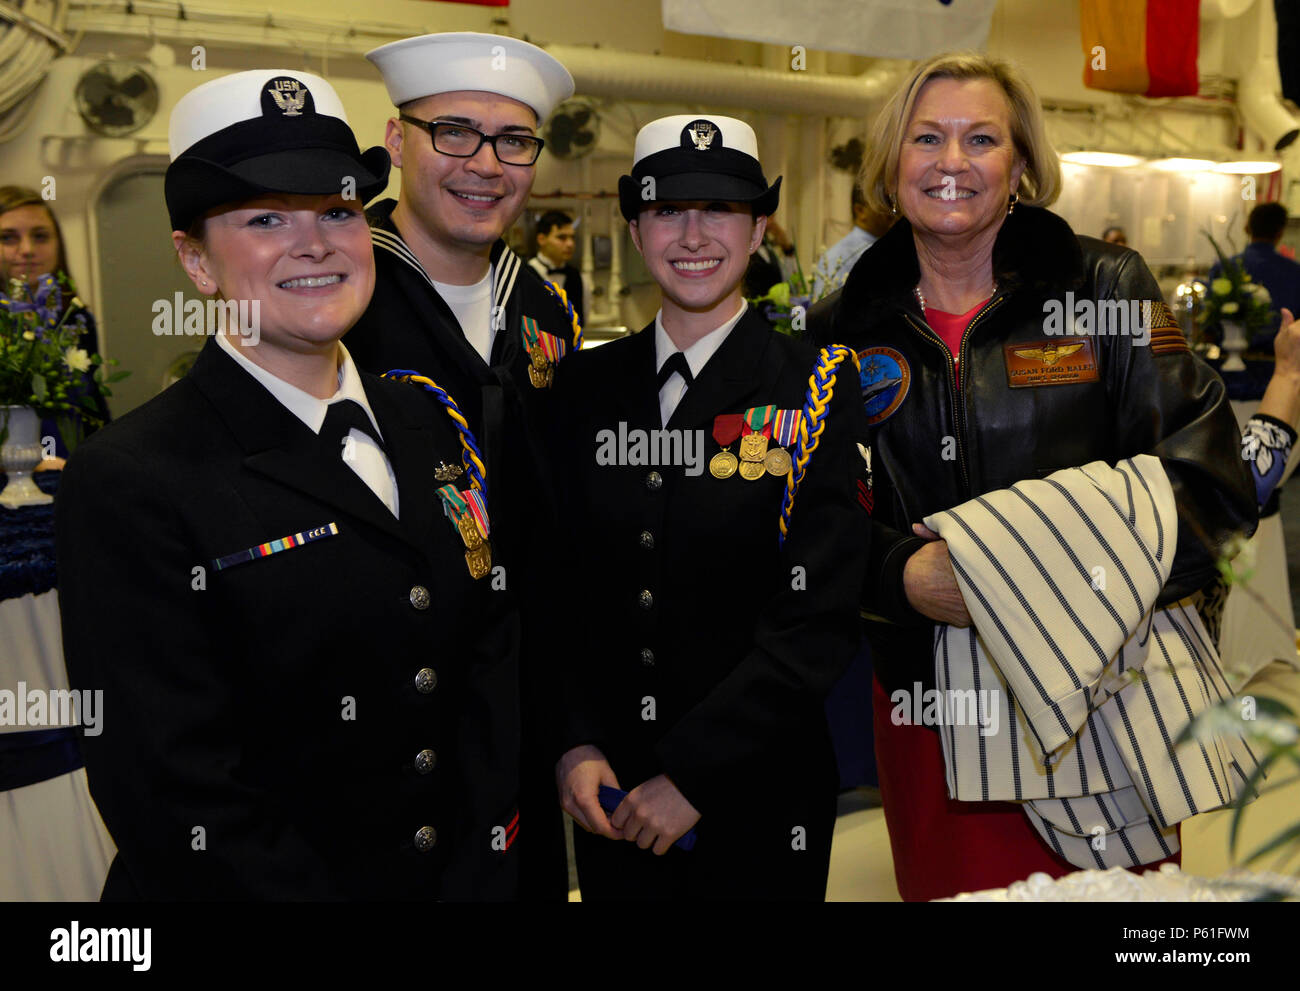 NEWPORT NEWS, Va., (April 8, 2016) – Ship Sponsor Susan Ford Bales poses with the Pre-Commissioning Unit Gerald R. Ford (CVN 78) choir during a reception following a change of command in the ship's hangar bay. Ford is the first of a new class of aircraft carriers currently under construction by Huntington Ingalls Newport News Shipbuilding. (U.S. Navy photo by Mass Communication Specialist Seaman Apprentice Gitte Schirrmacher/Released) - Stock Image